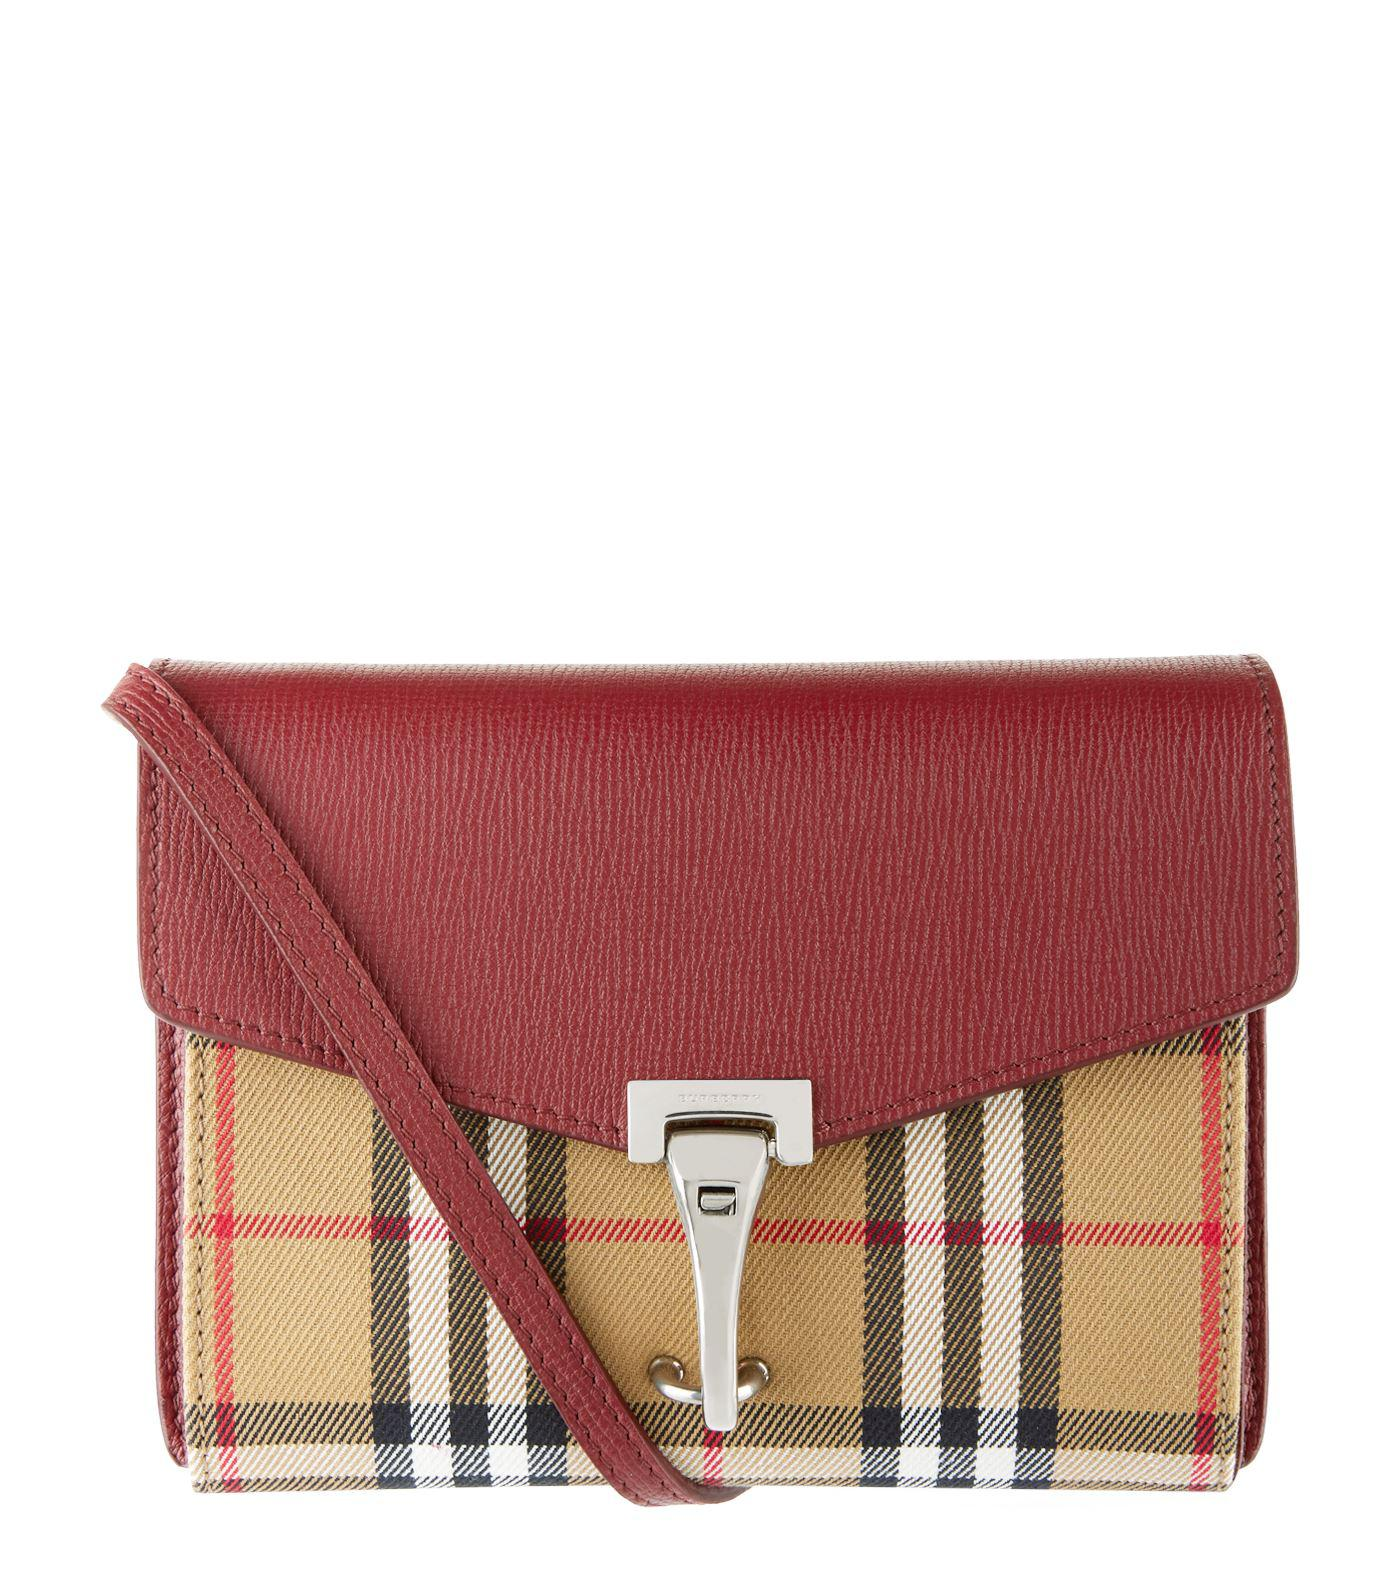 d9c4bf5de790 Burberry Macken Mini Vintage Check   Leather Crossbody in Red - Save ...